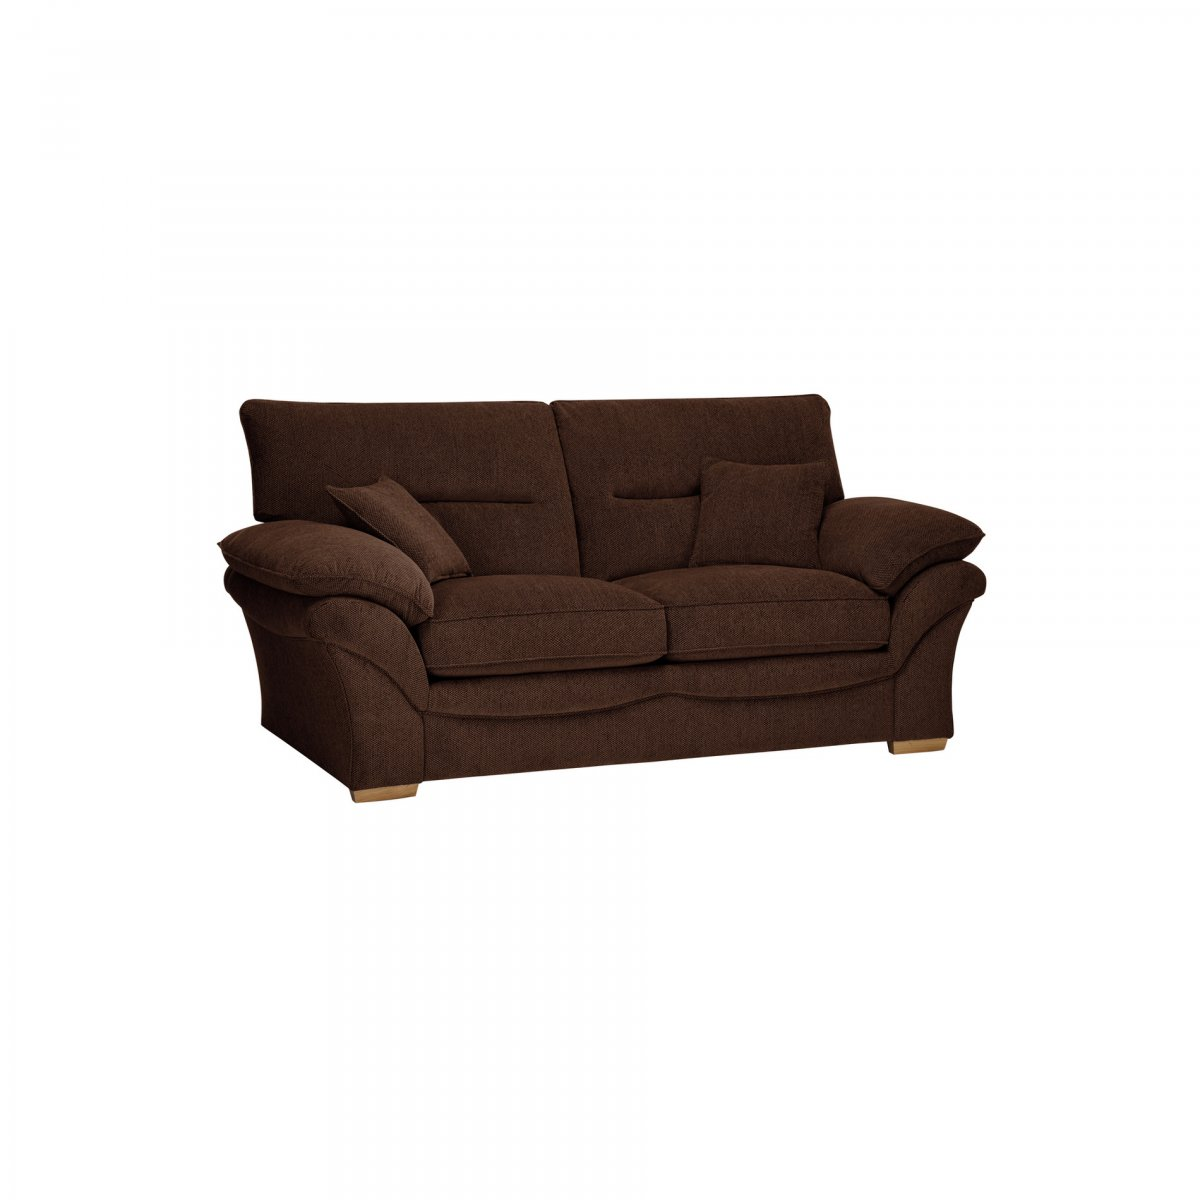 Chloe 2 seater standard sofa bed in brown fabric for Sofa bed 2 seater